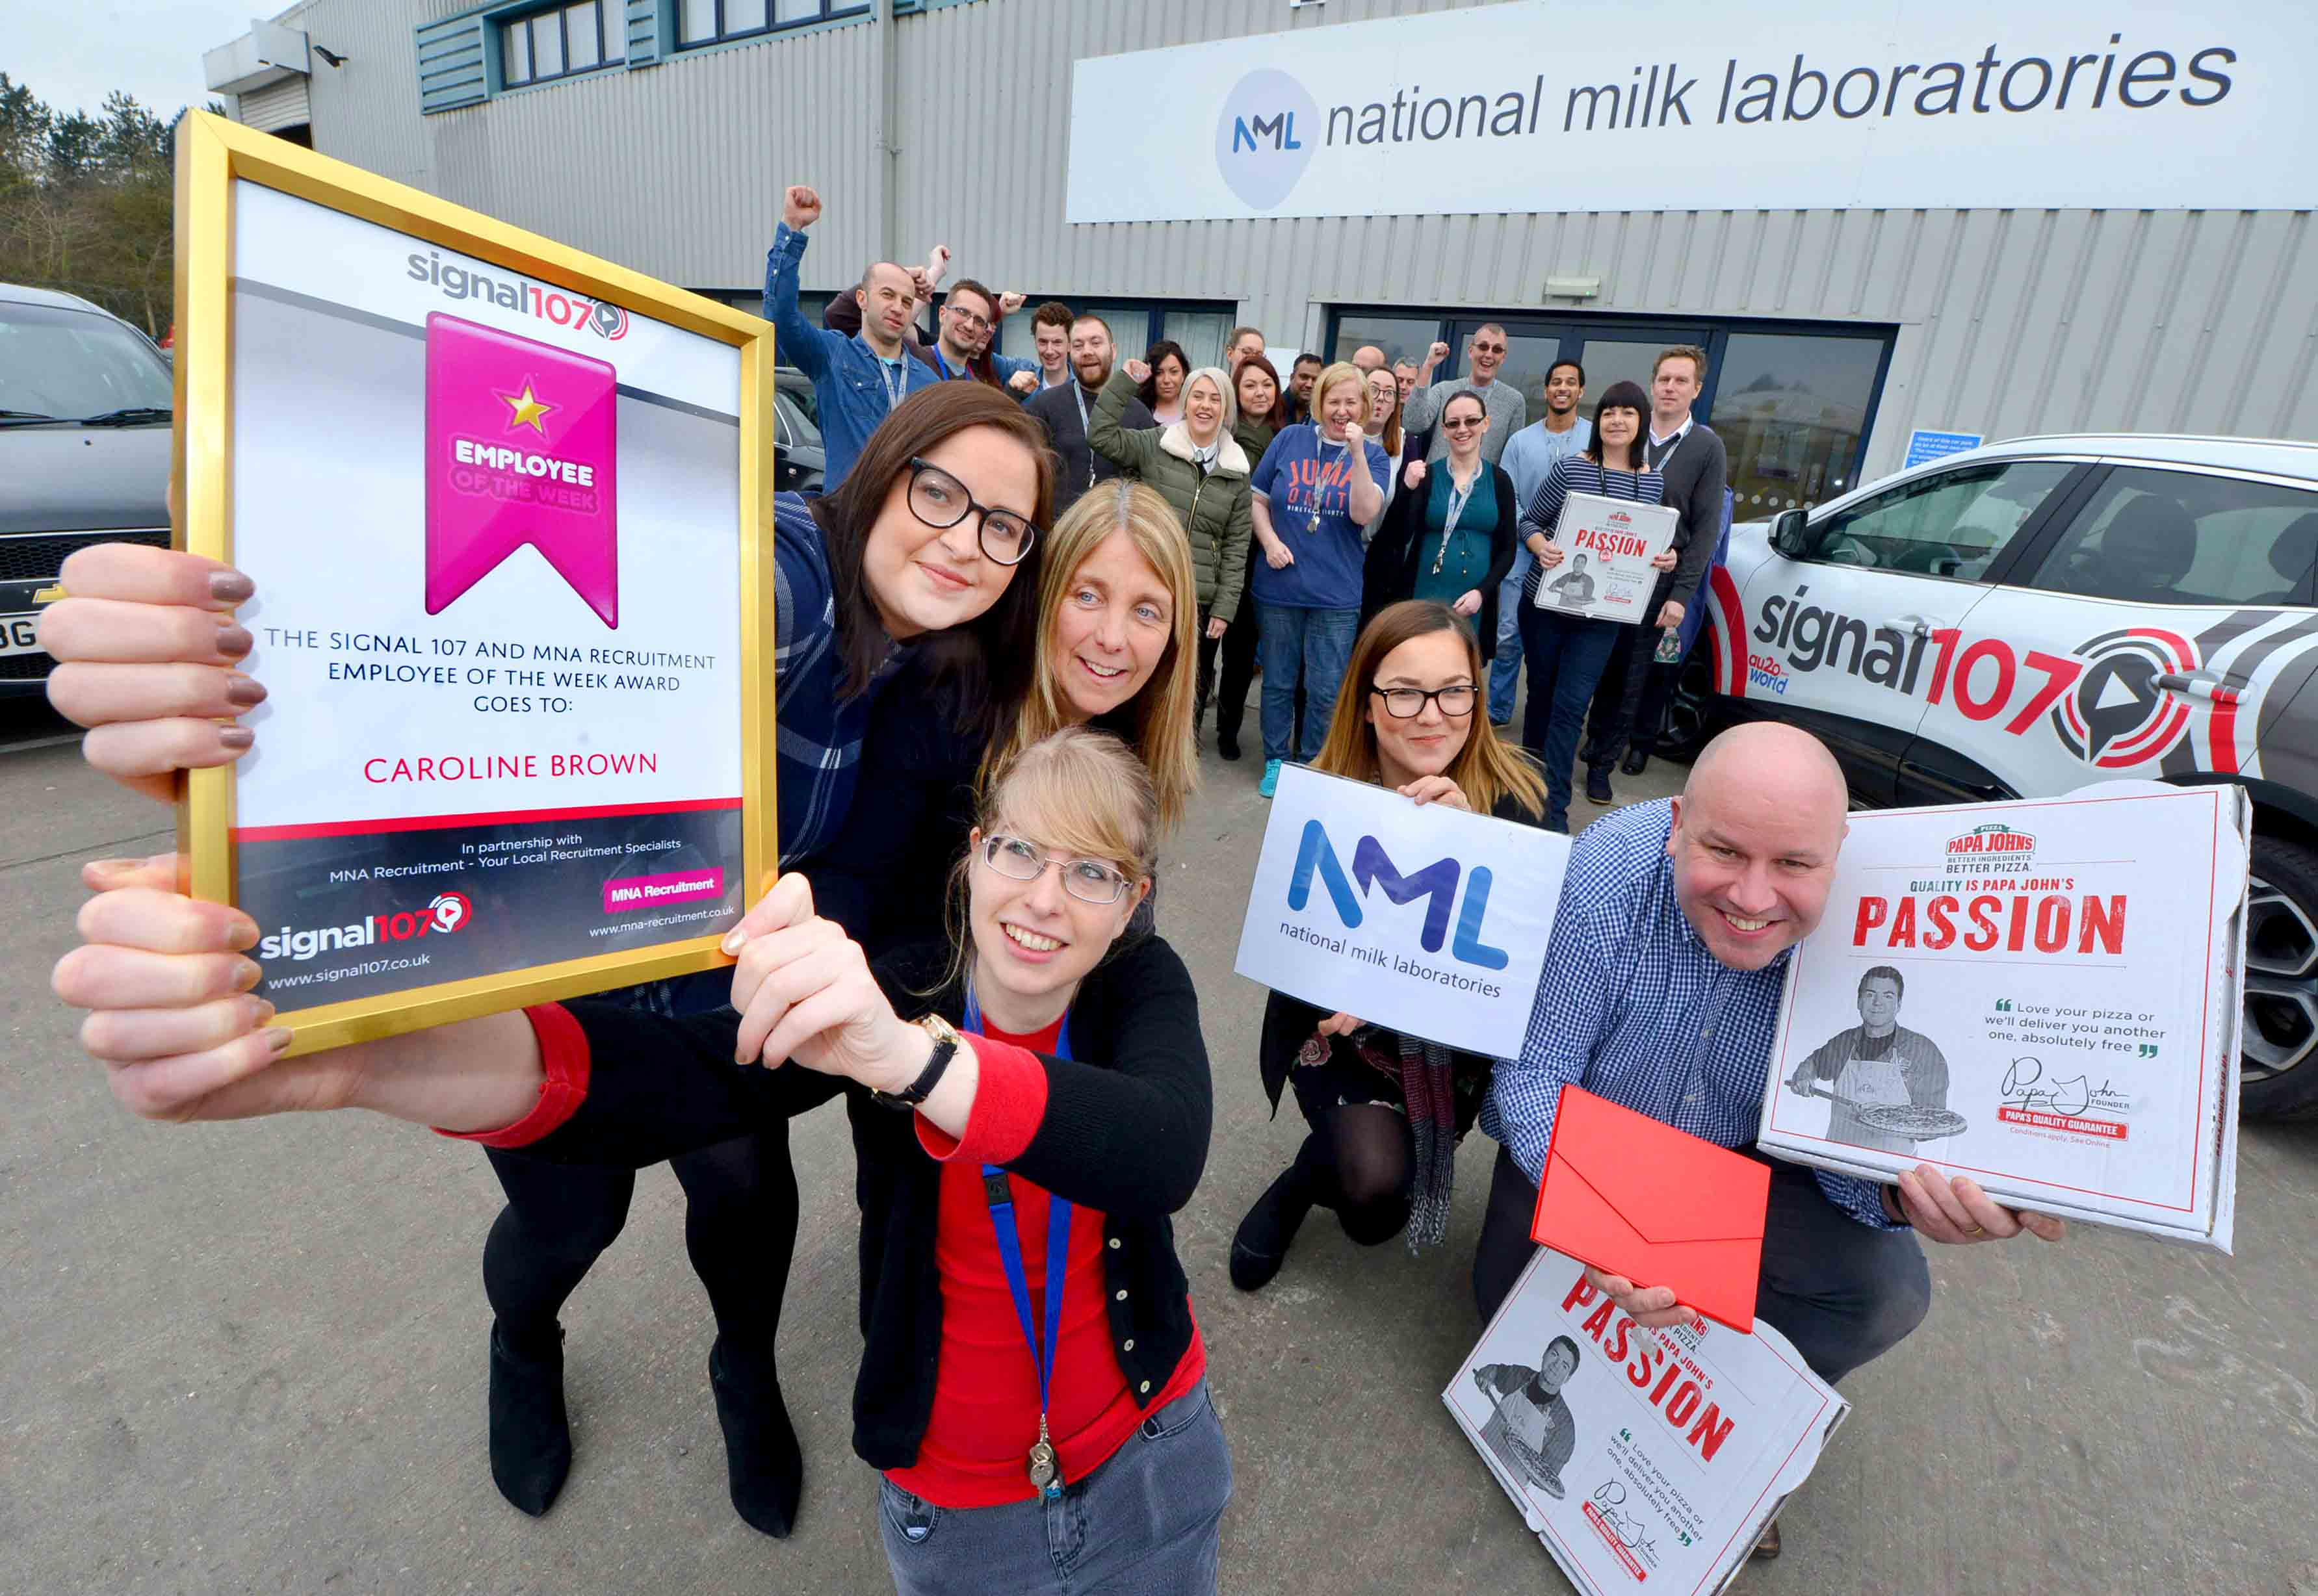 National Milk LaboratoriesEmployee Of The Week Competition - Our Winners Star Employment Services